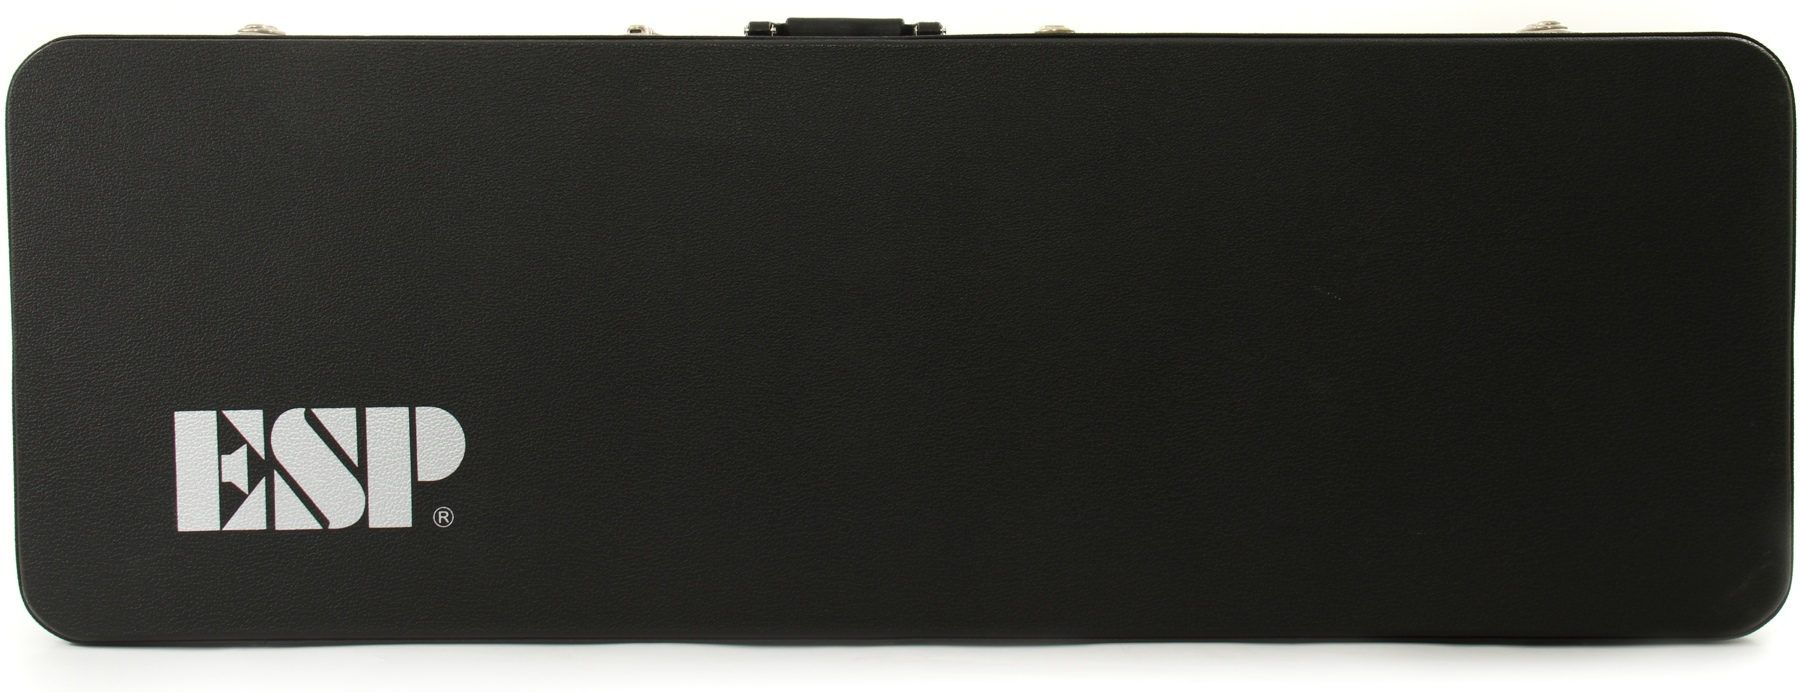 ESP CECXLFF EC XL Guitar Case Fitting Design with Durable Tolex Finish and Plush Interior